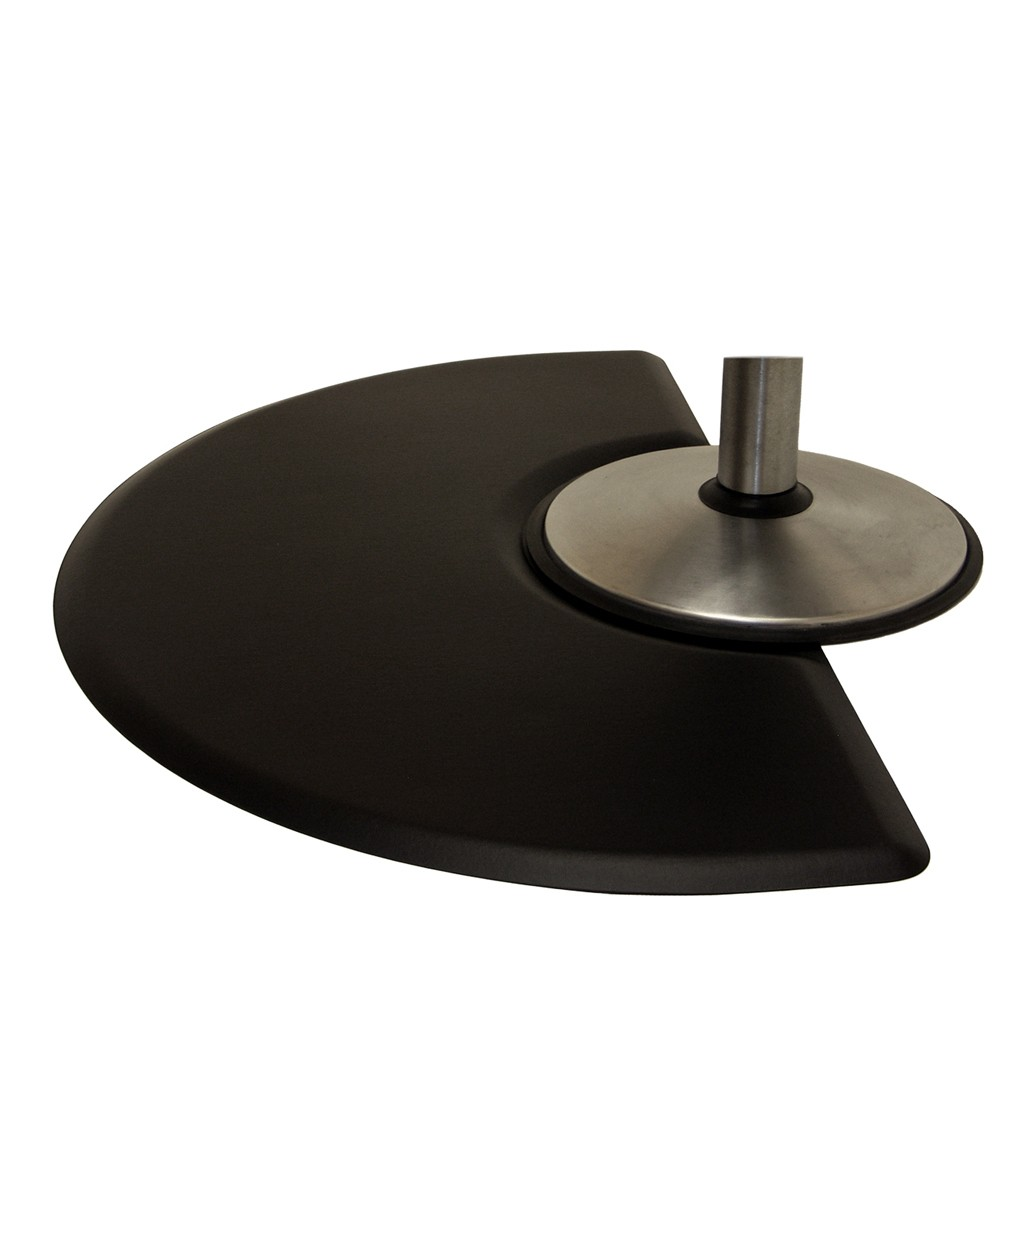 "Urethane Extra Soft Circular Mat 5/8"" from Buy-Rite Beauty"